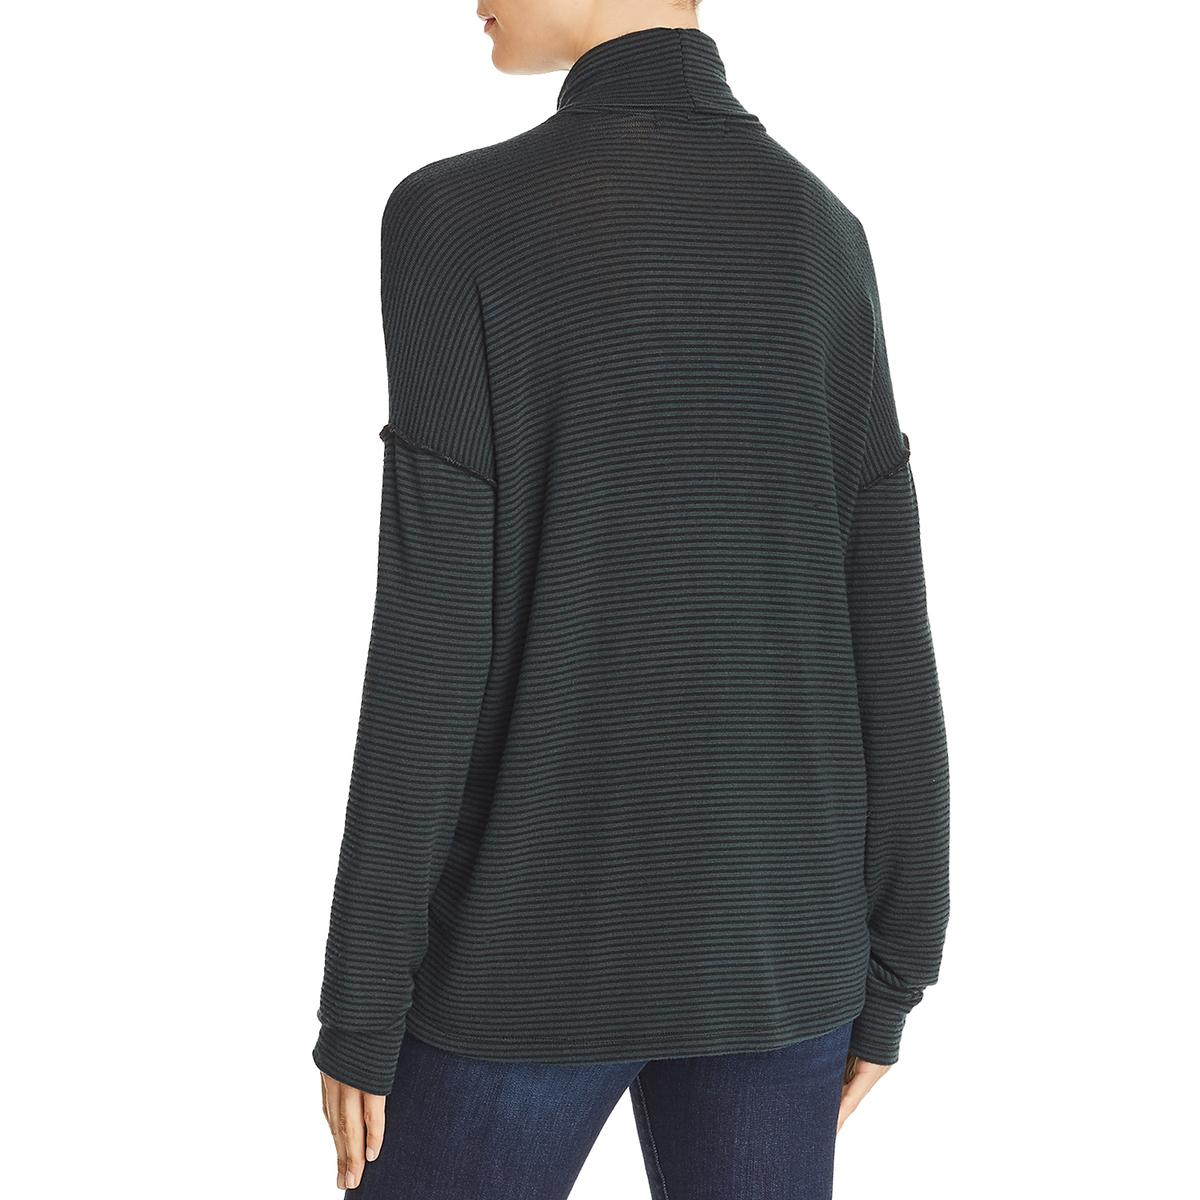 Philanthropy Womens Nickel Modal Striped Turtleneck Top Shirt BHFO 4404